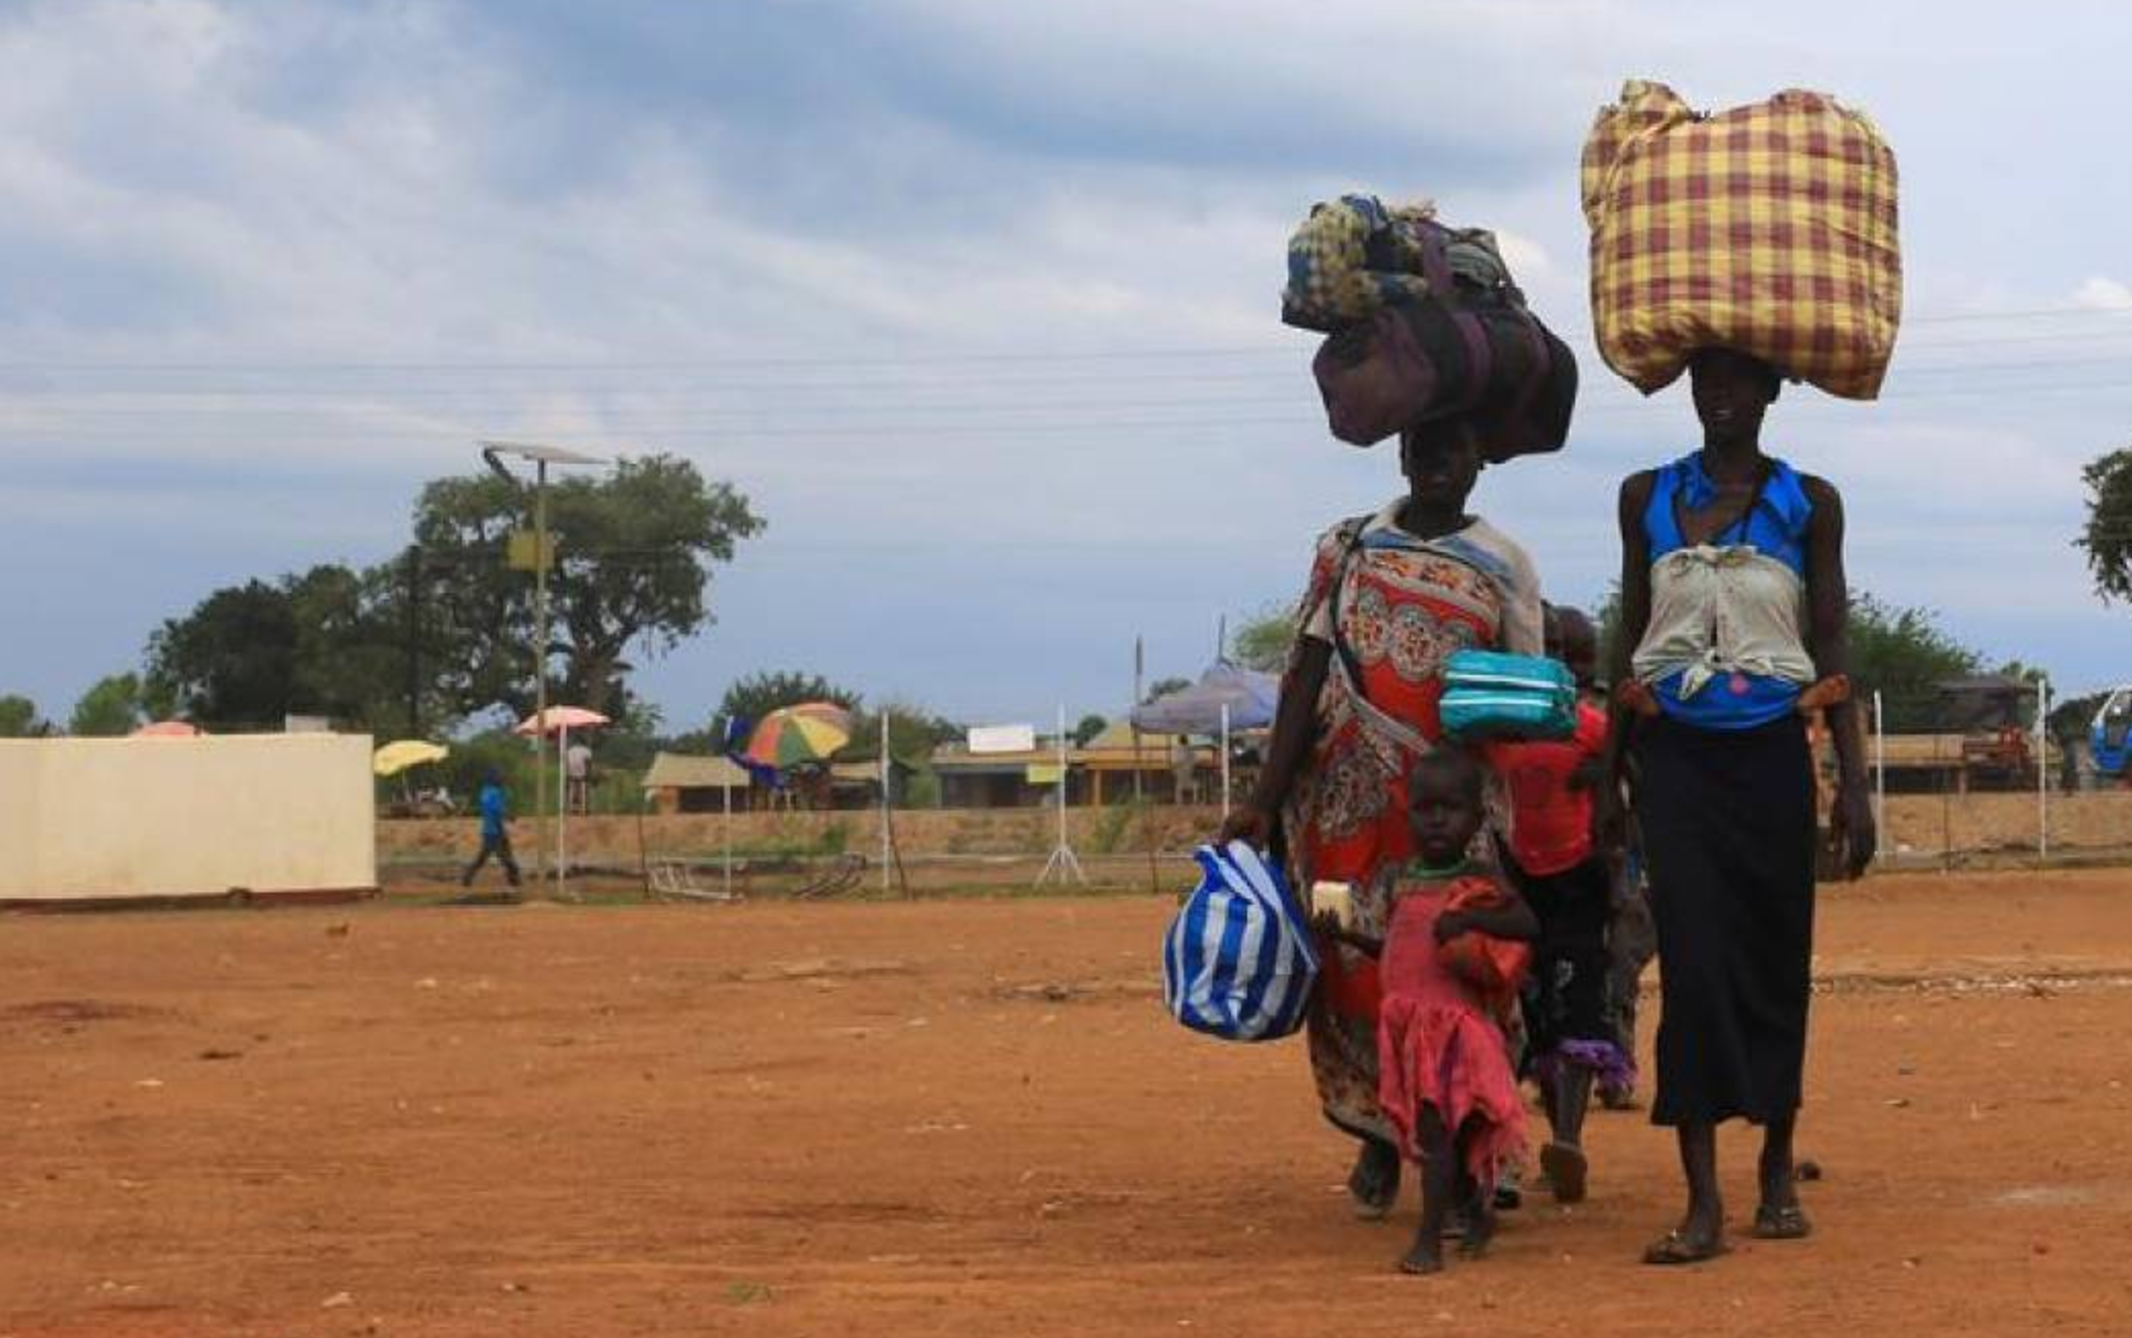 Uganda welcomes more refugees daily than some in Europe annually, charity says – Thomson Reuters Foundation (image)